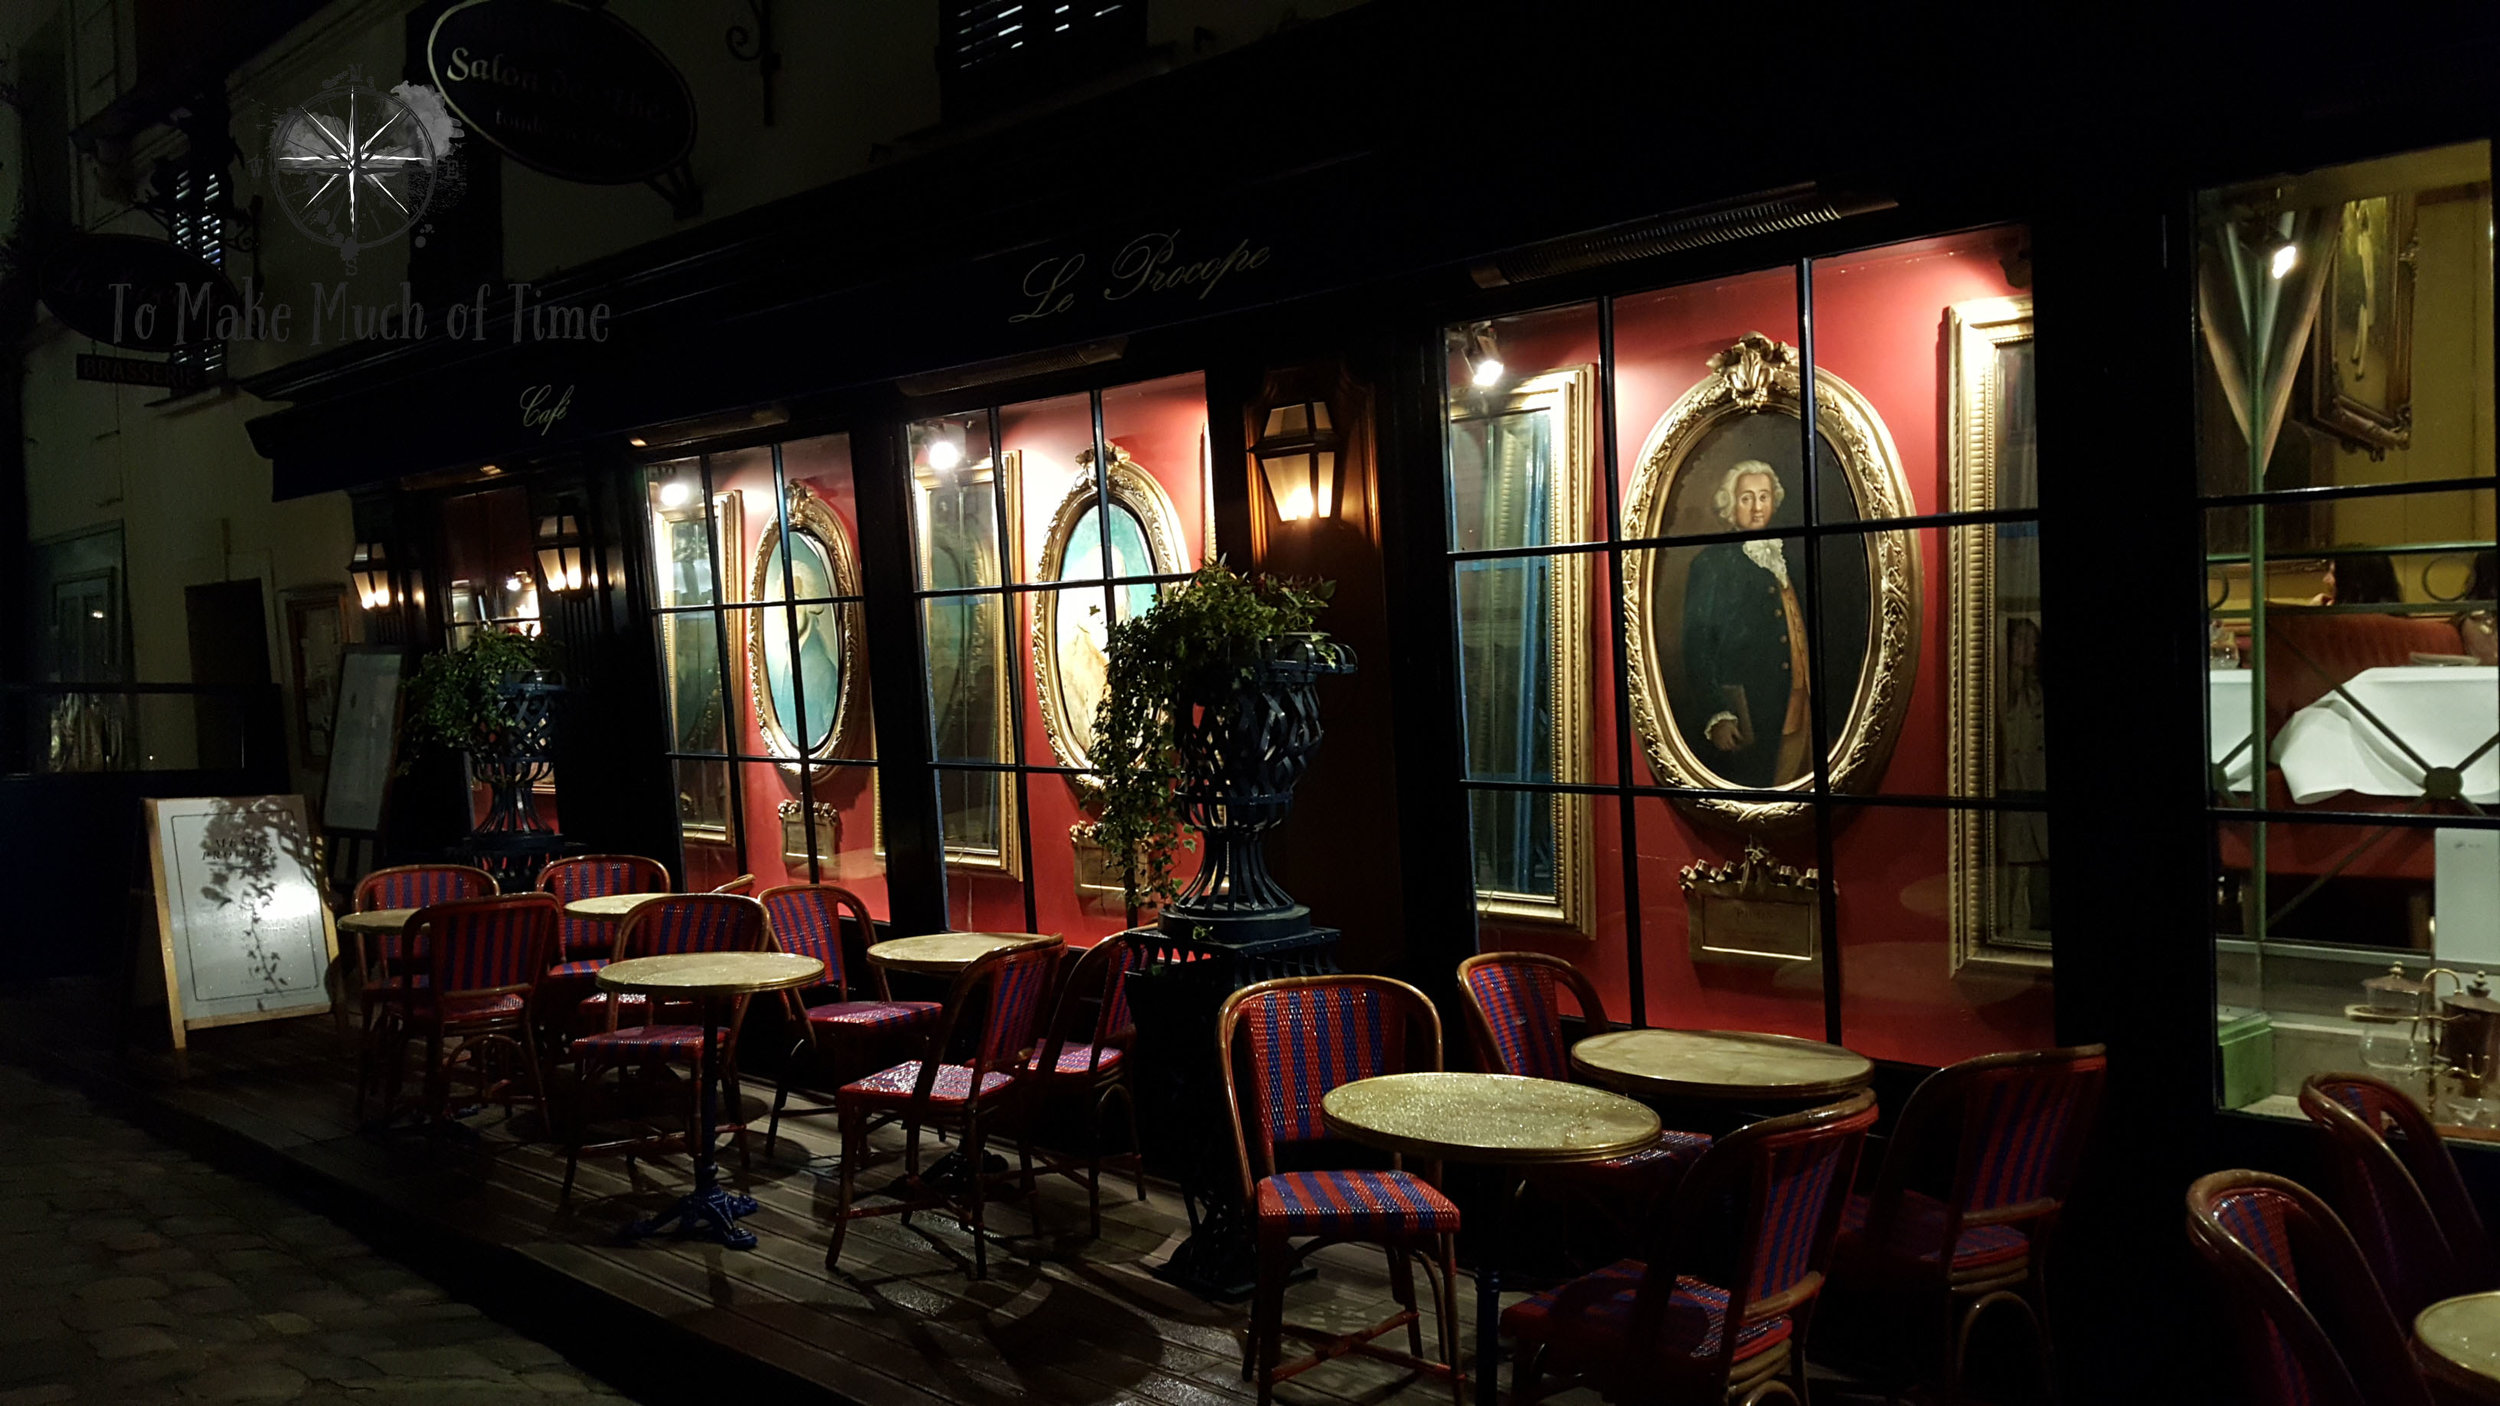 Le Procope | Historic, Amazing French Restaurant | Paris France | To Make Much of Time